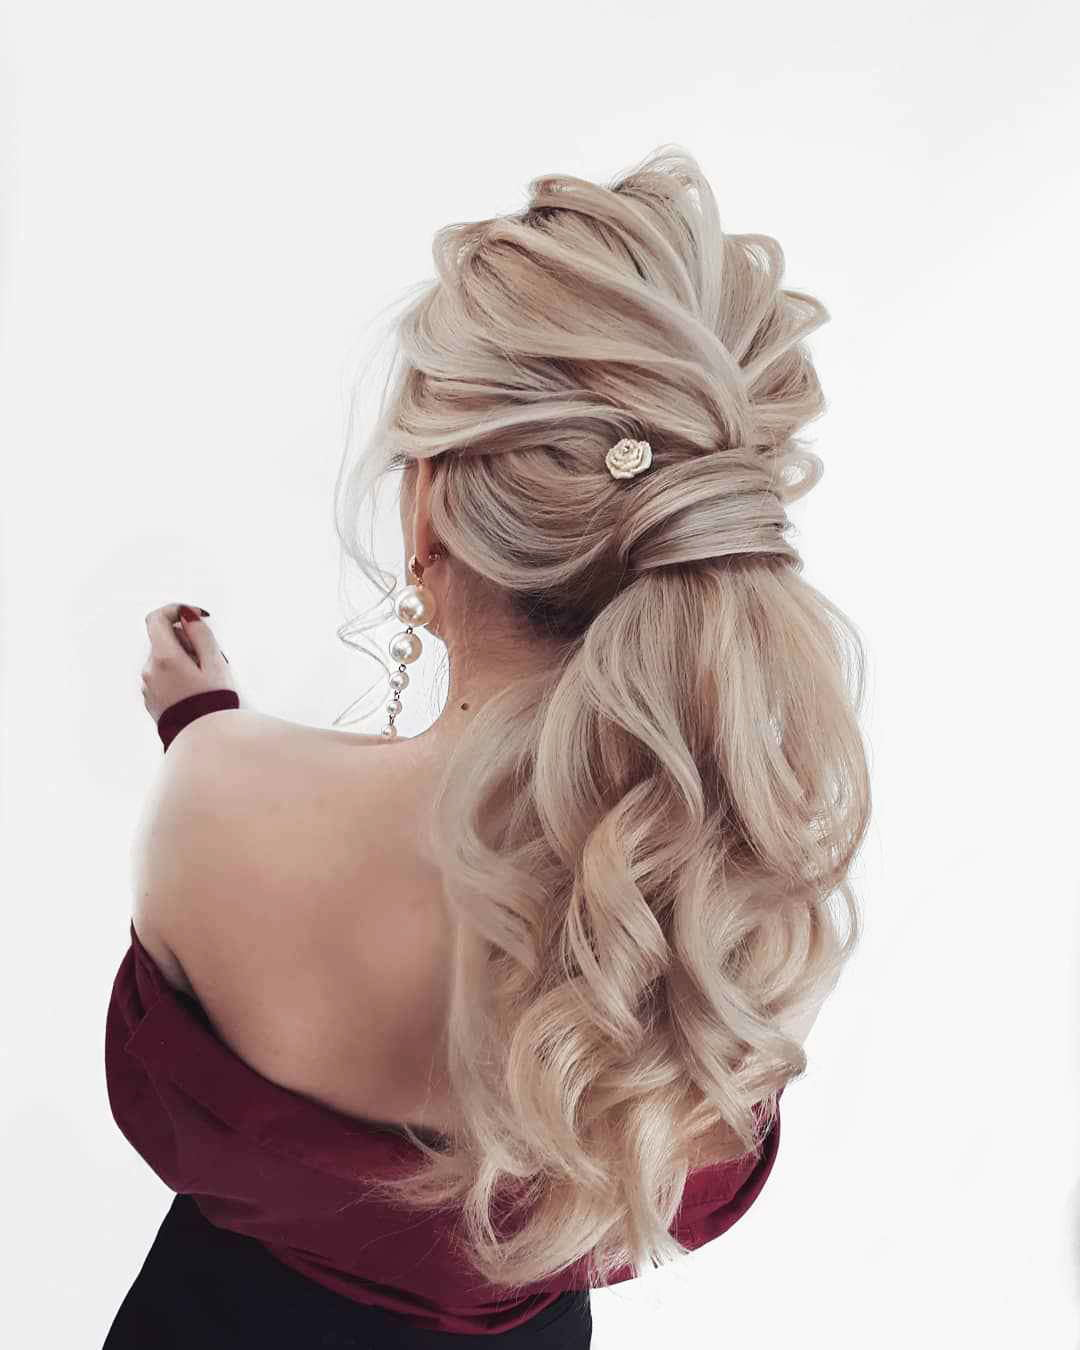 Hairstyles For Prom On Long Hair 2019-2020: Photo 14